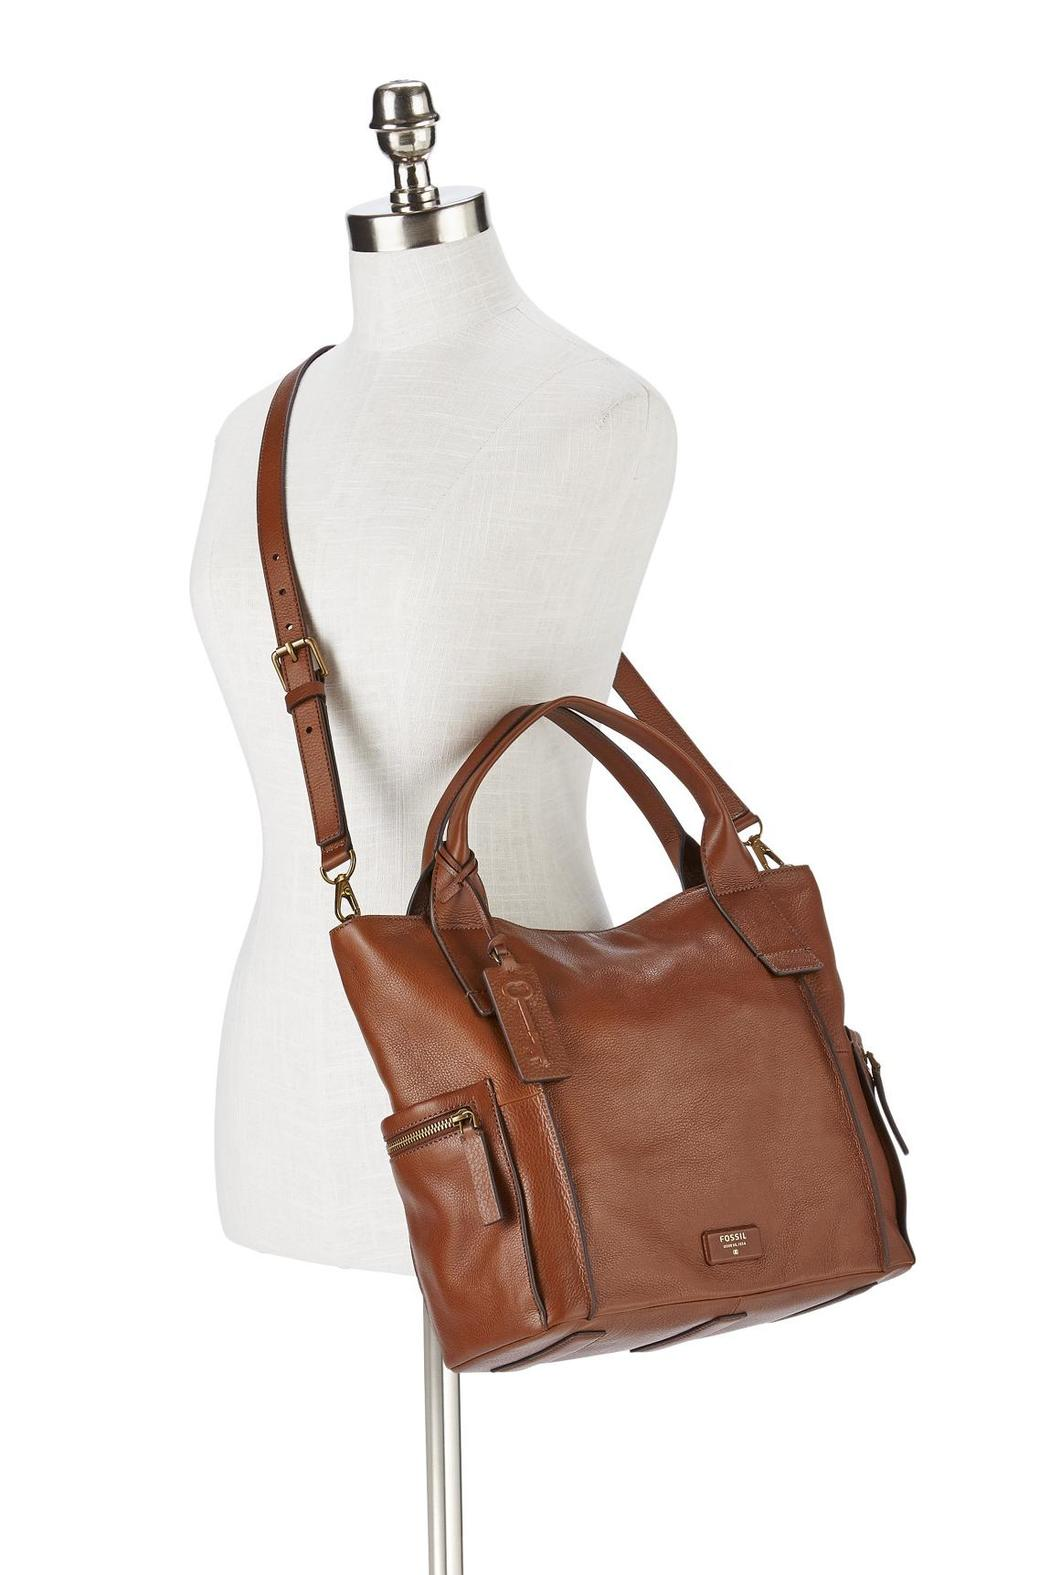 Fossil Sydney Satchel Zigzag Zb 5490200 Brown Coklat Daftar Harga Emerson In Seaglass Back Cropped Image